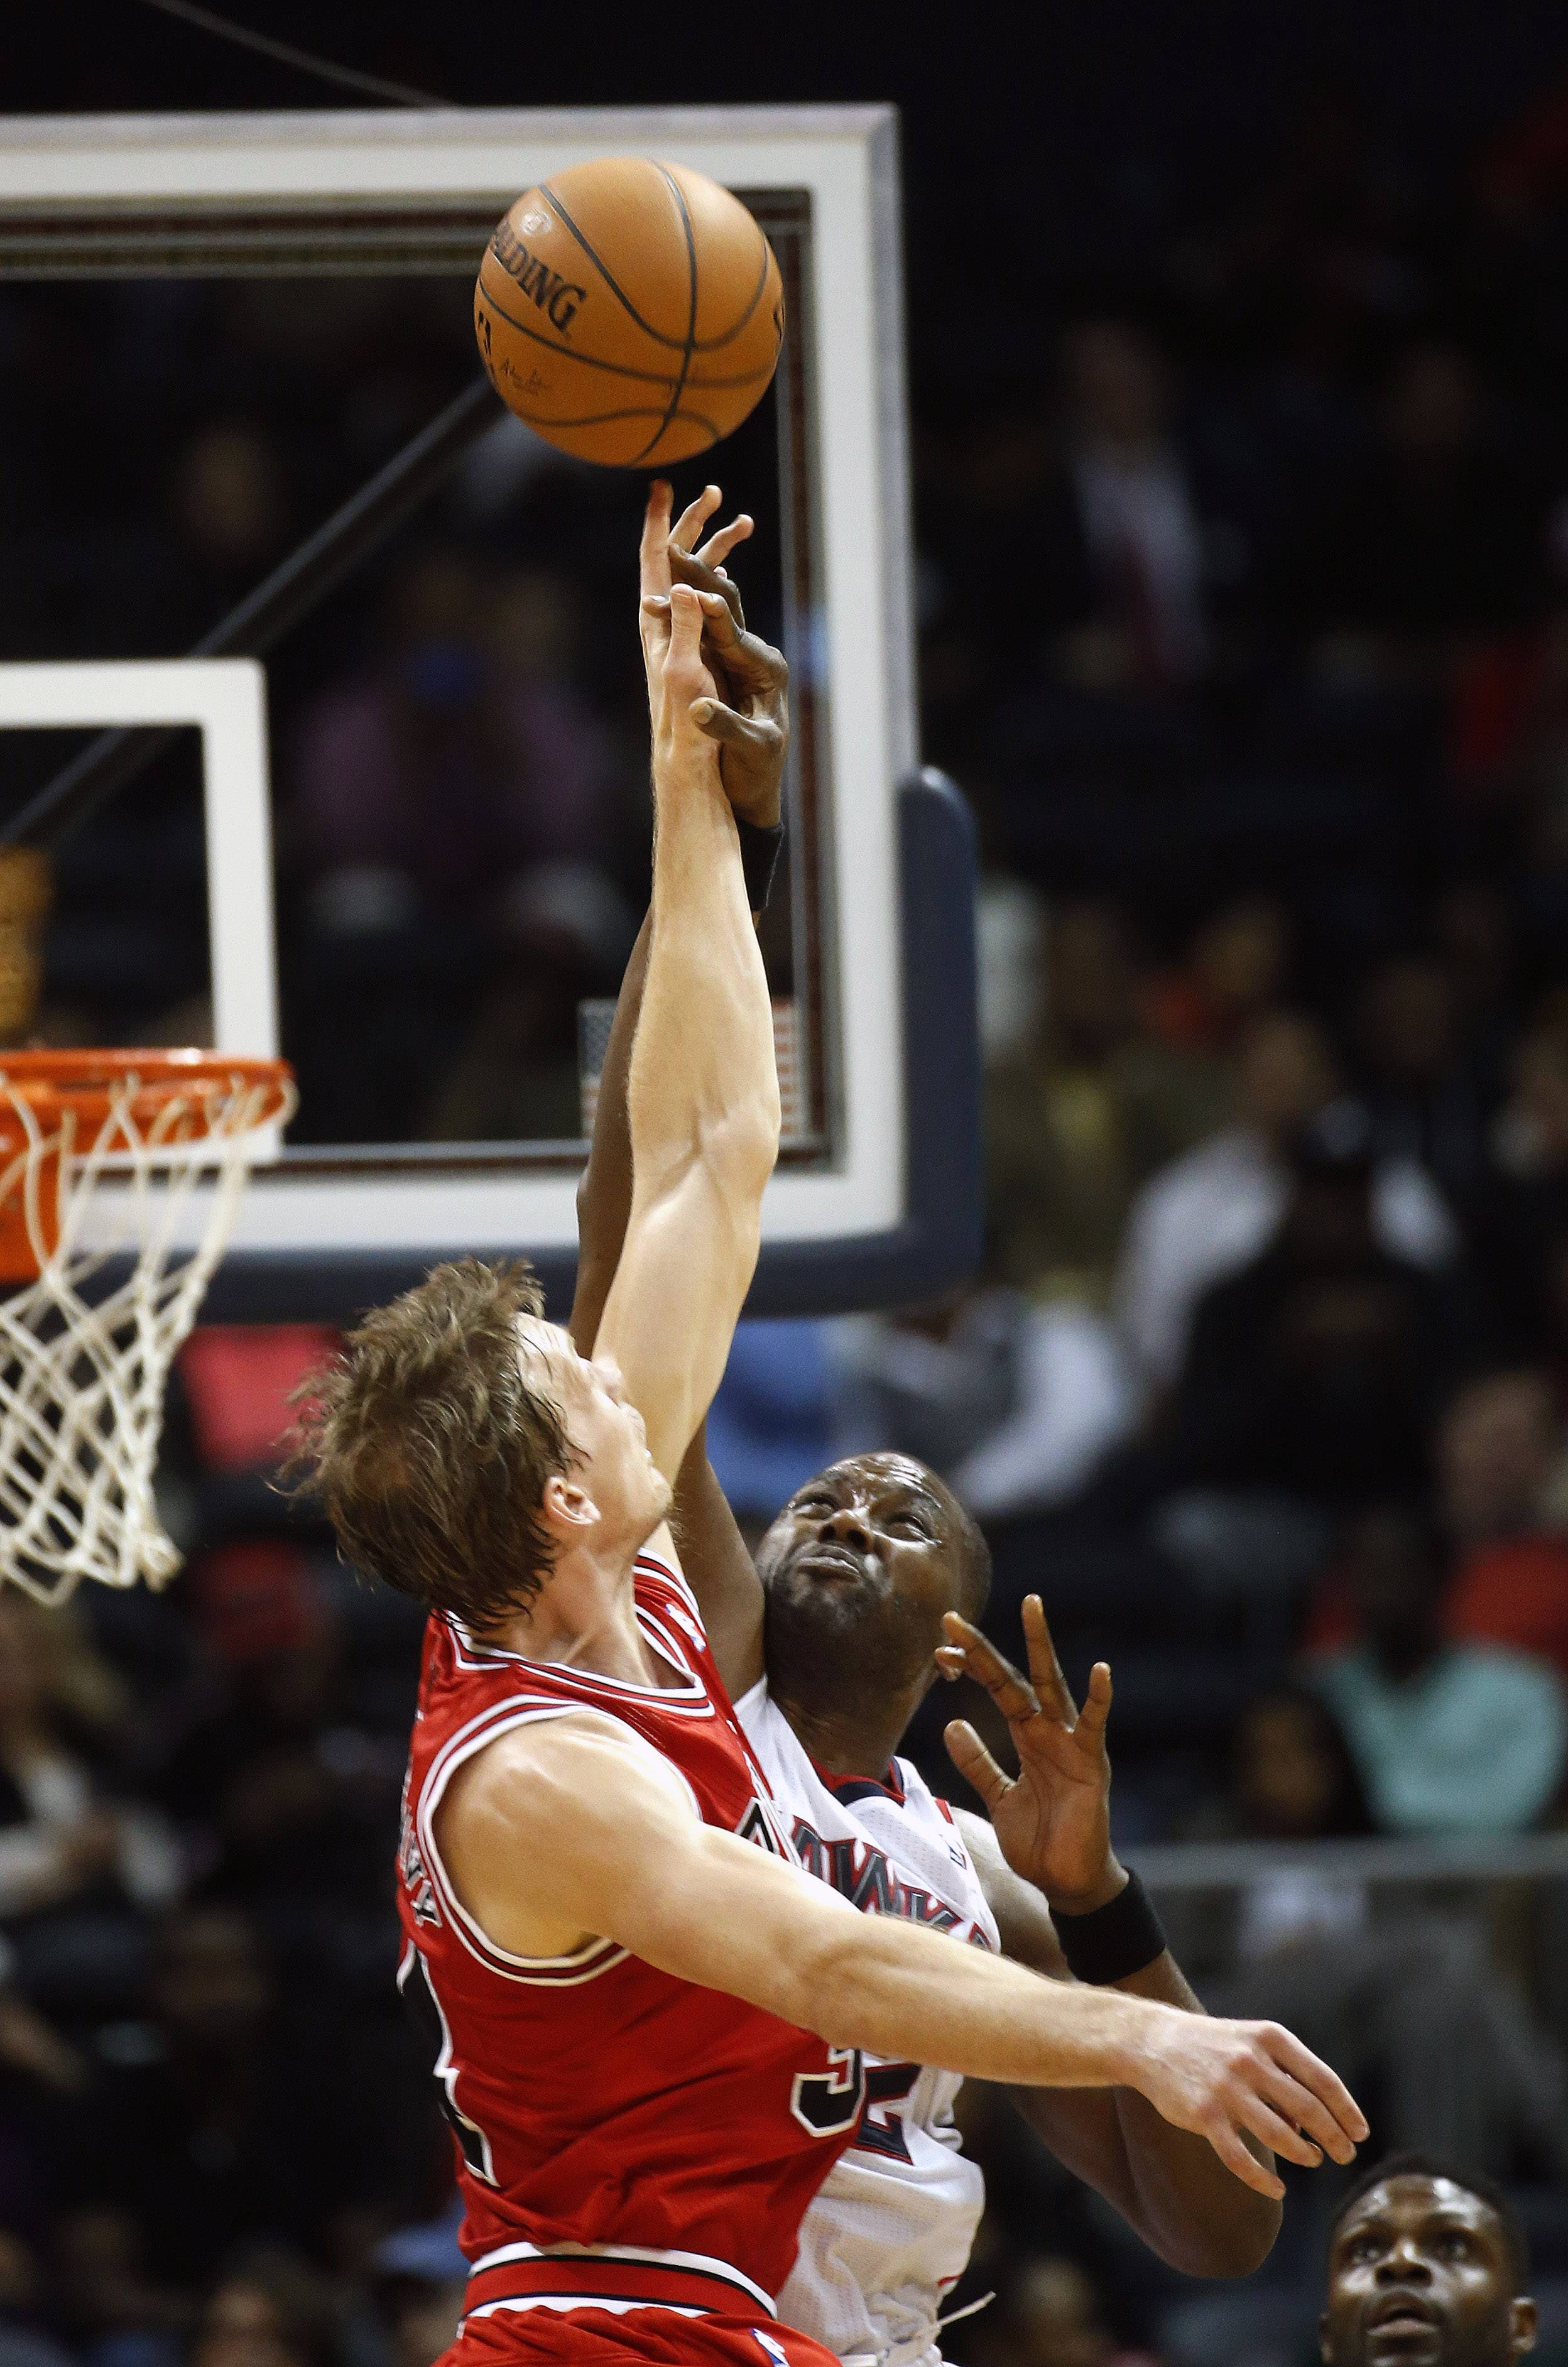 Atlanta Hawks power forward Elton Brand (42) and Chicago Bulls small forward Mike Dunleavy (34) battle for control on a jump ball in the first half of an NBA basketball game Tuesday, Feb. 25, 2014, in Atlanta. (AP Photo/John Bazemore)